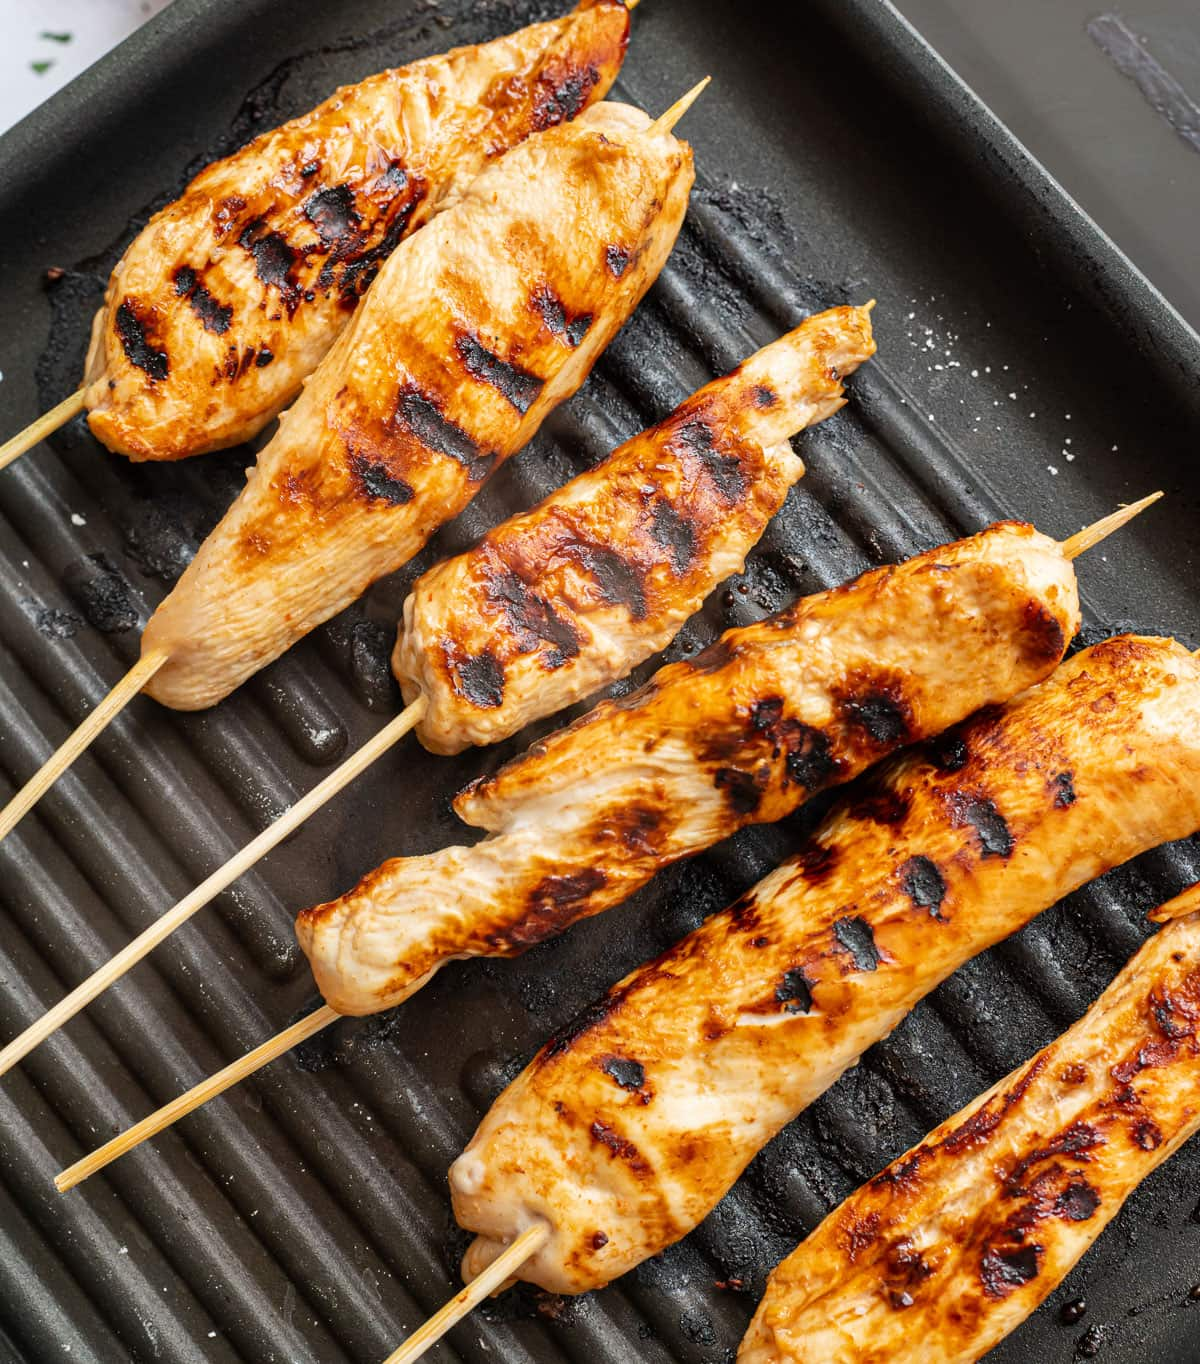 Chicken skewers being grilled